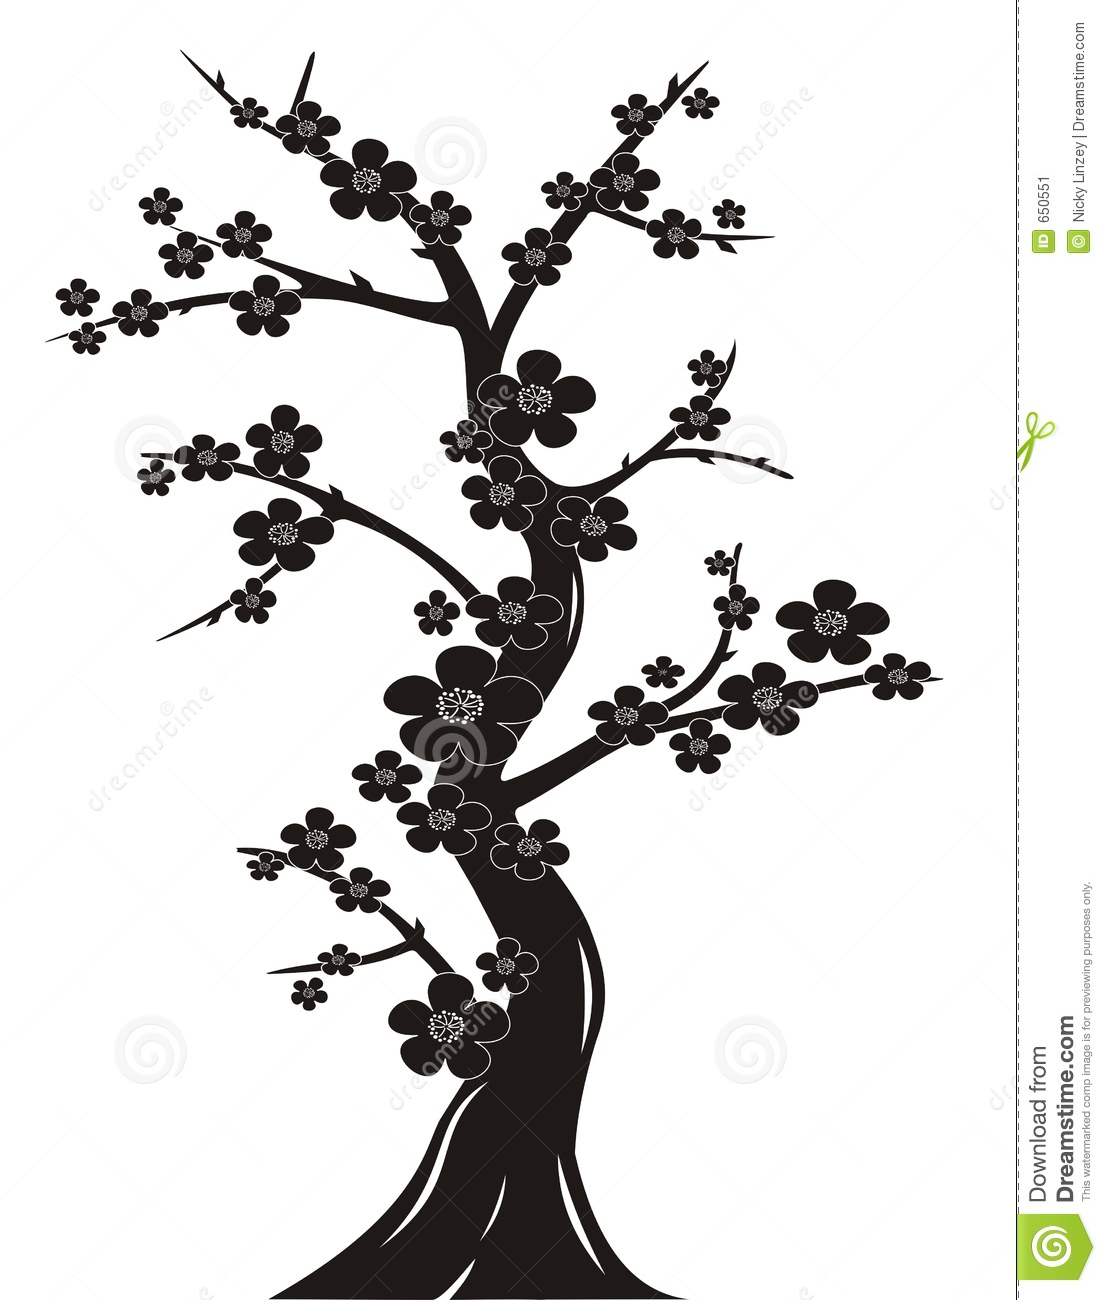 Cherry Blossom Tree Black And White: Cherry Blossom Tree Silhouette Stock Vector